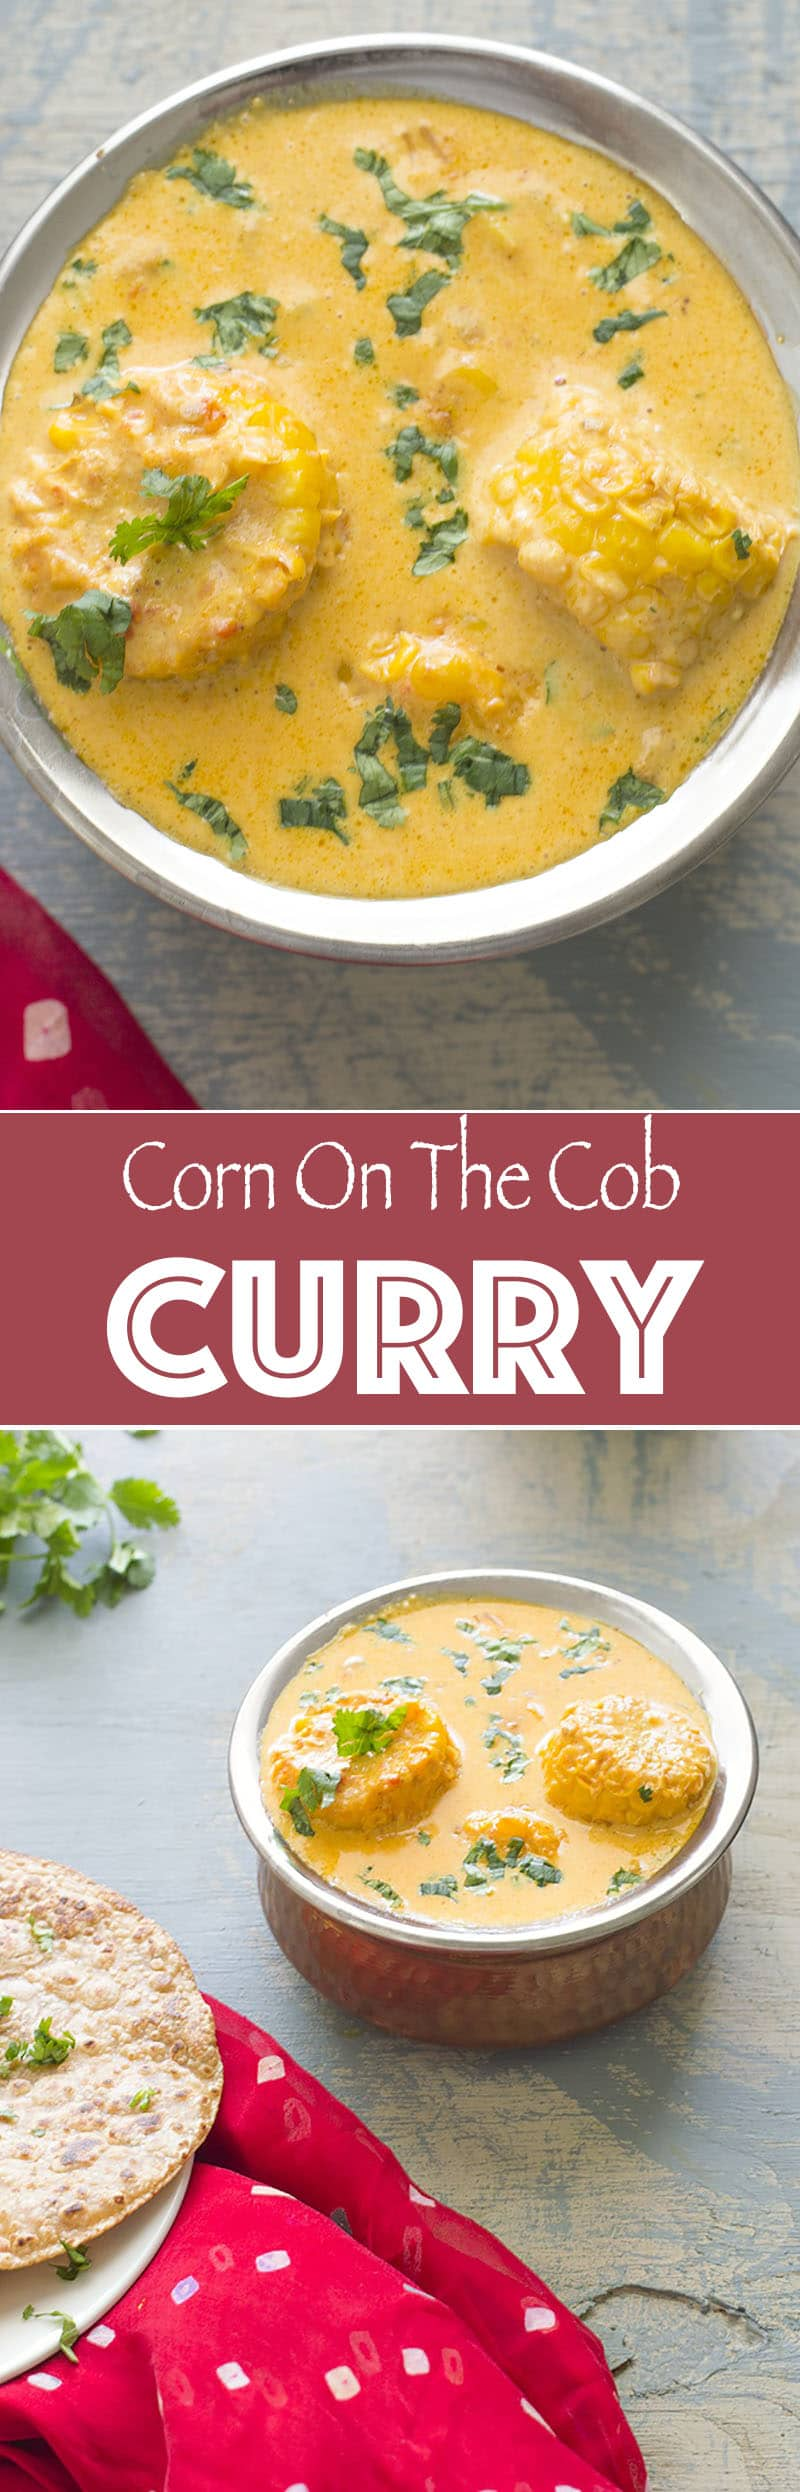 Corn On The Cob Curry Is The Perfect Dinner Recipe For The Whole Family  There